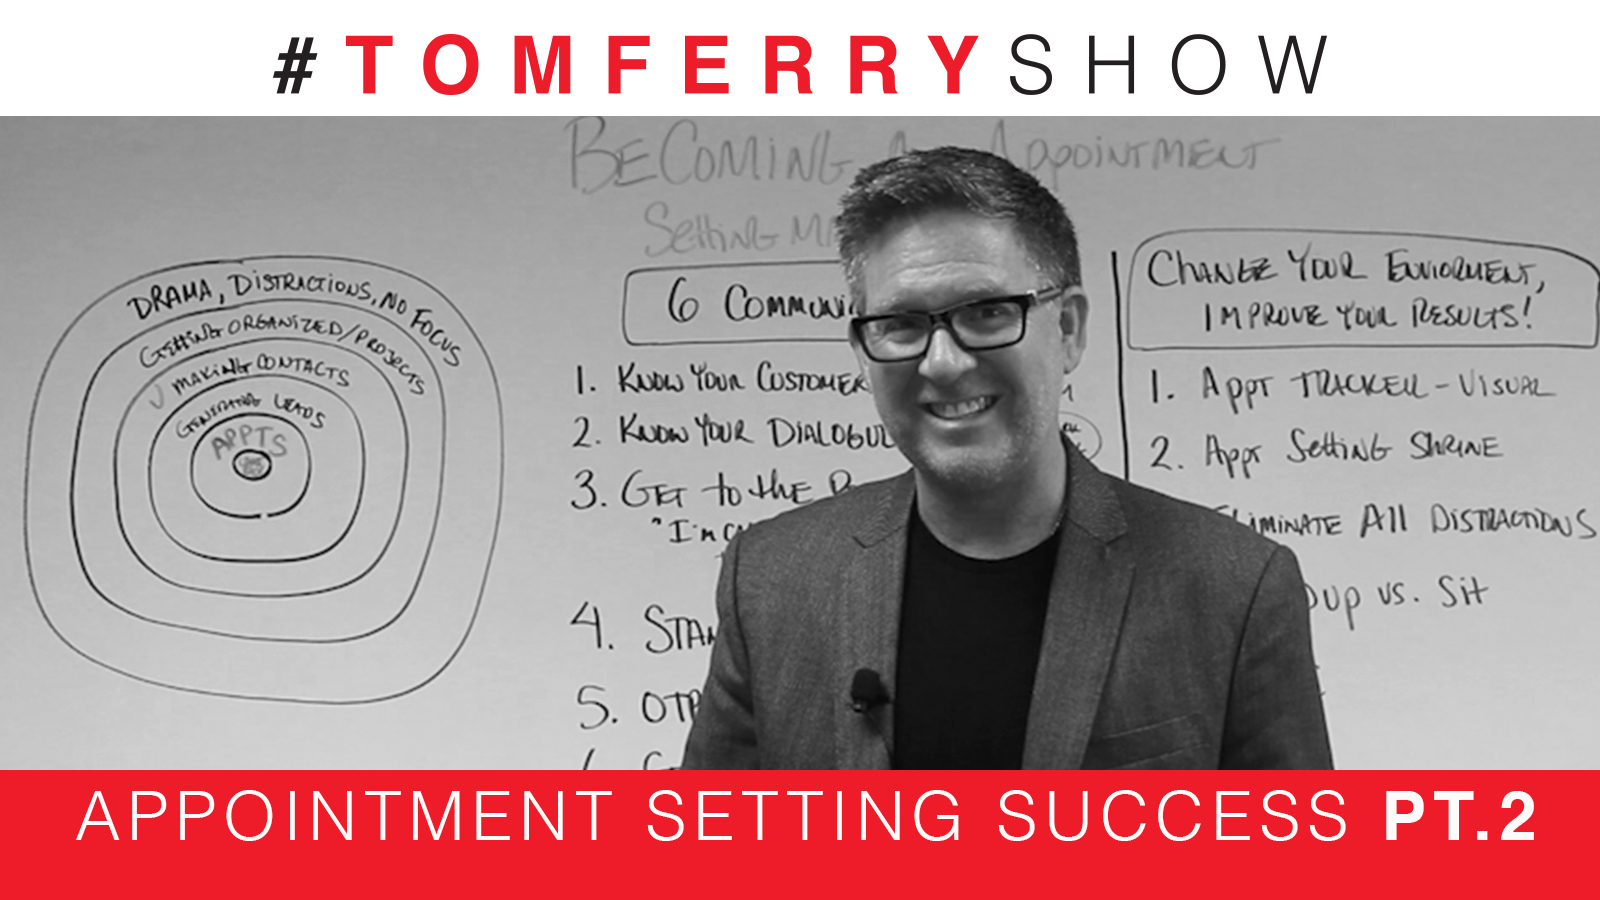 6 Tips To Schedule More Appointments On The Phone – #TomFerryShow